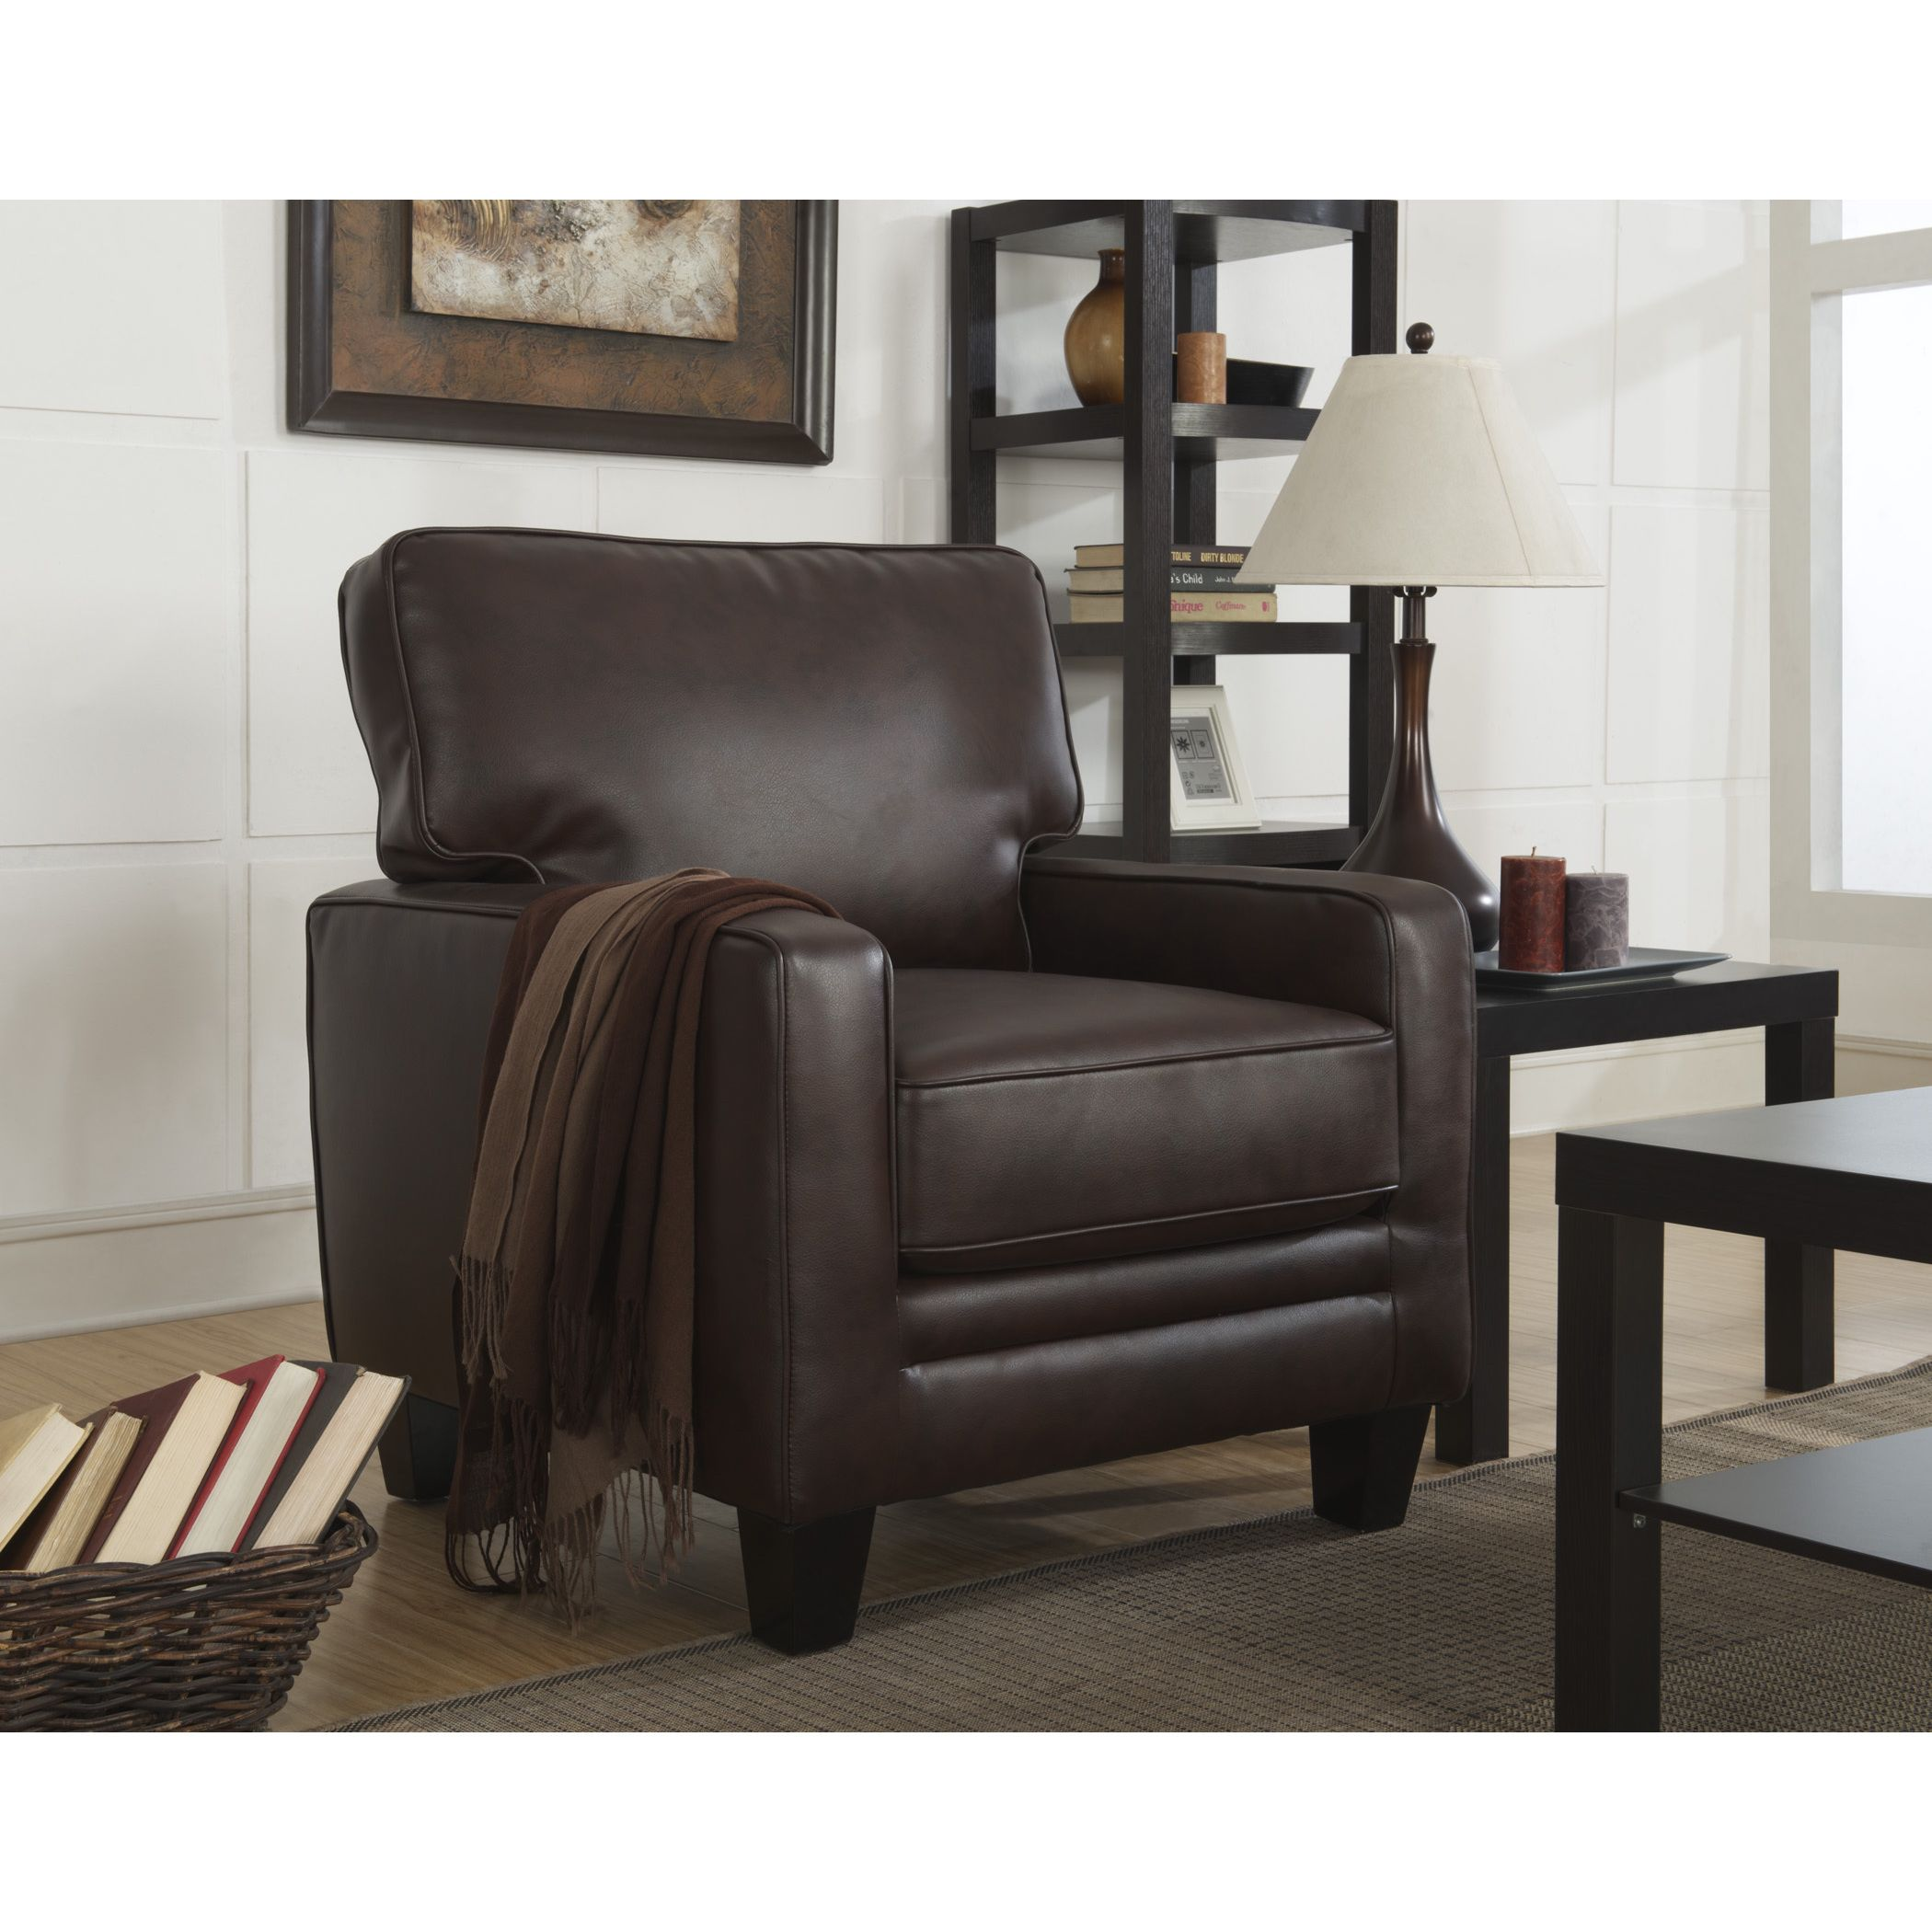 Refined and classic, the bonded-leather used is eco-friendly and stylish. Easily assembled and extremely comfortable, add this accent chair to your living room or study for a relaxing, timeless look.